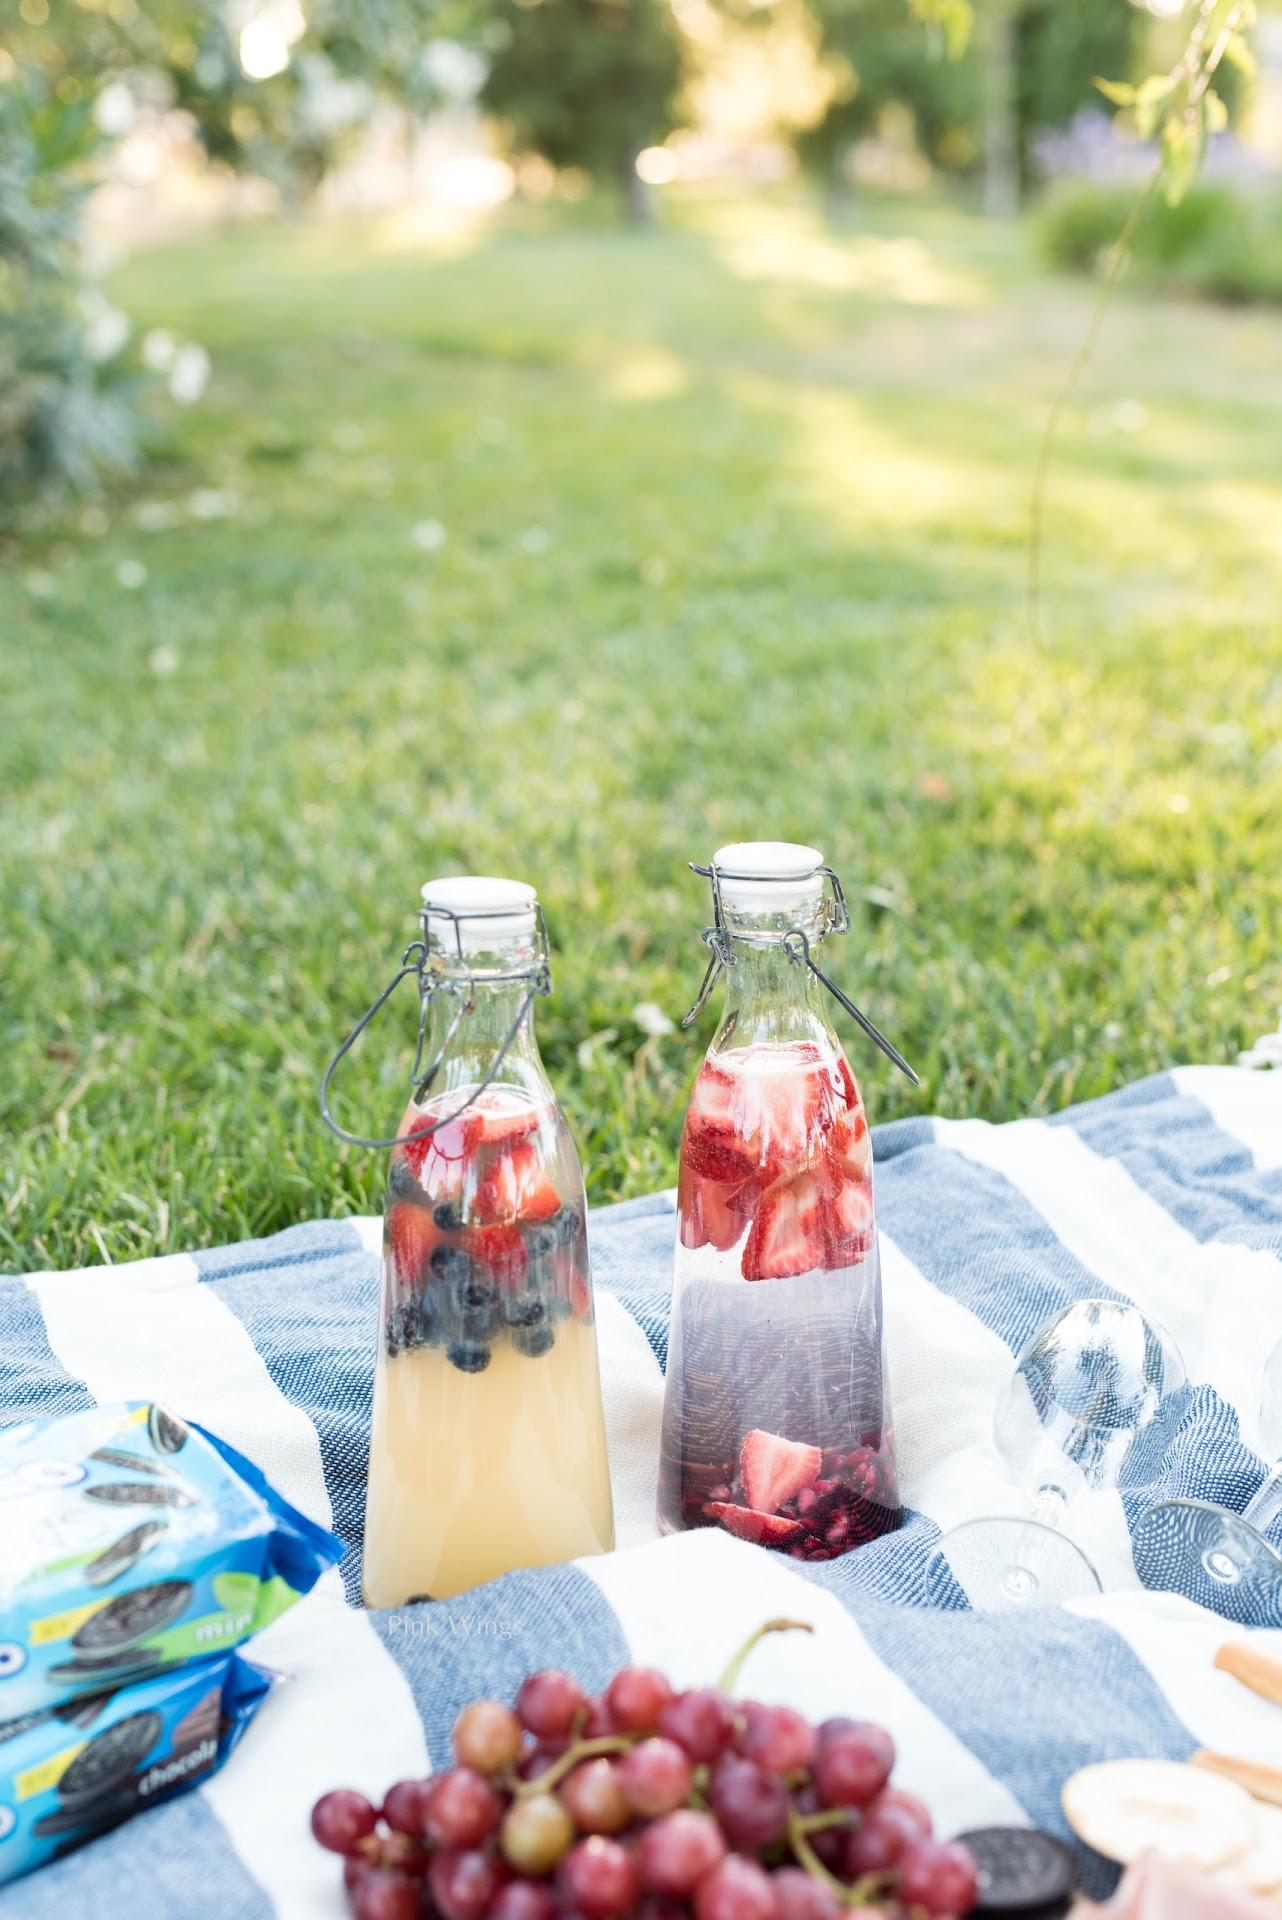 romantic picnic, picnic for two, how to throw the perfect picnic, picnic ideas, where to buy a picnic basket, tips for picnics, picnic blanket, picnic food ideas, picnic dessert, summer beverage, summer drink ideas, picnic drinks, summer party drinks, fruit infused water, lemonade